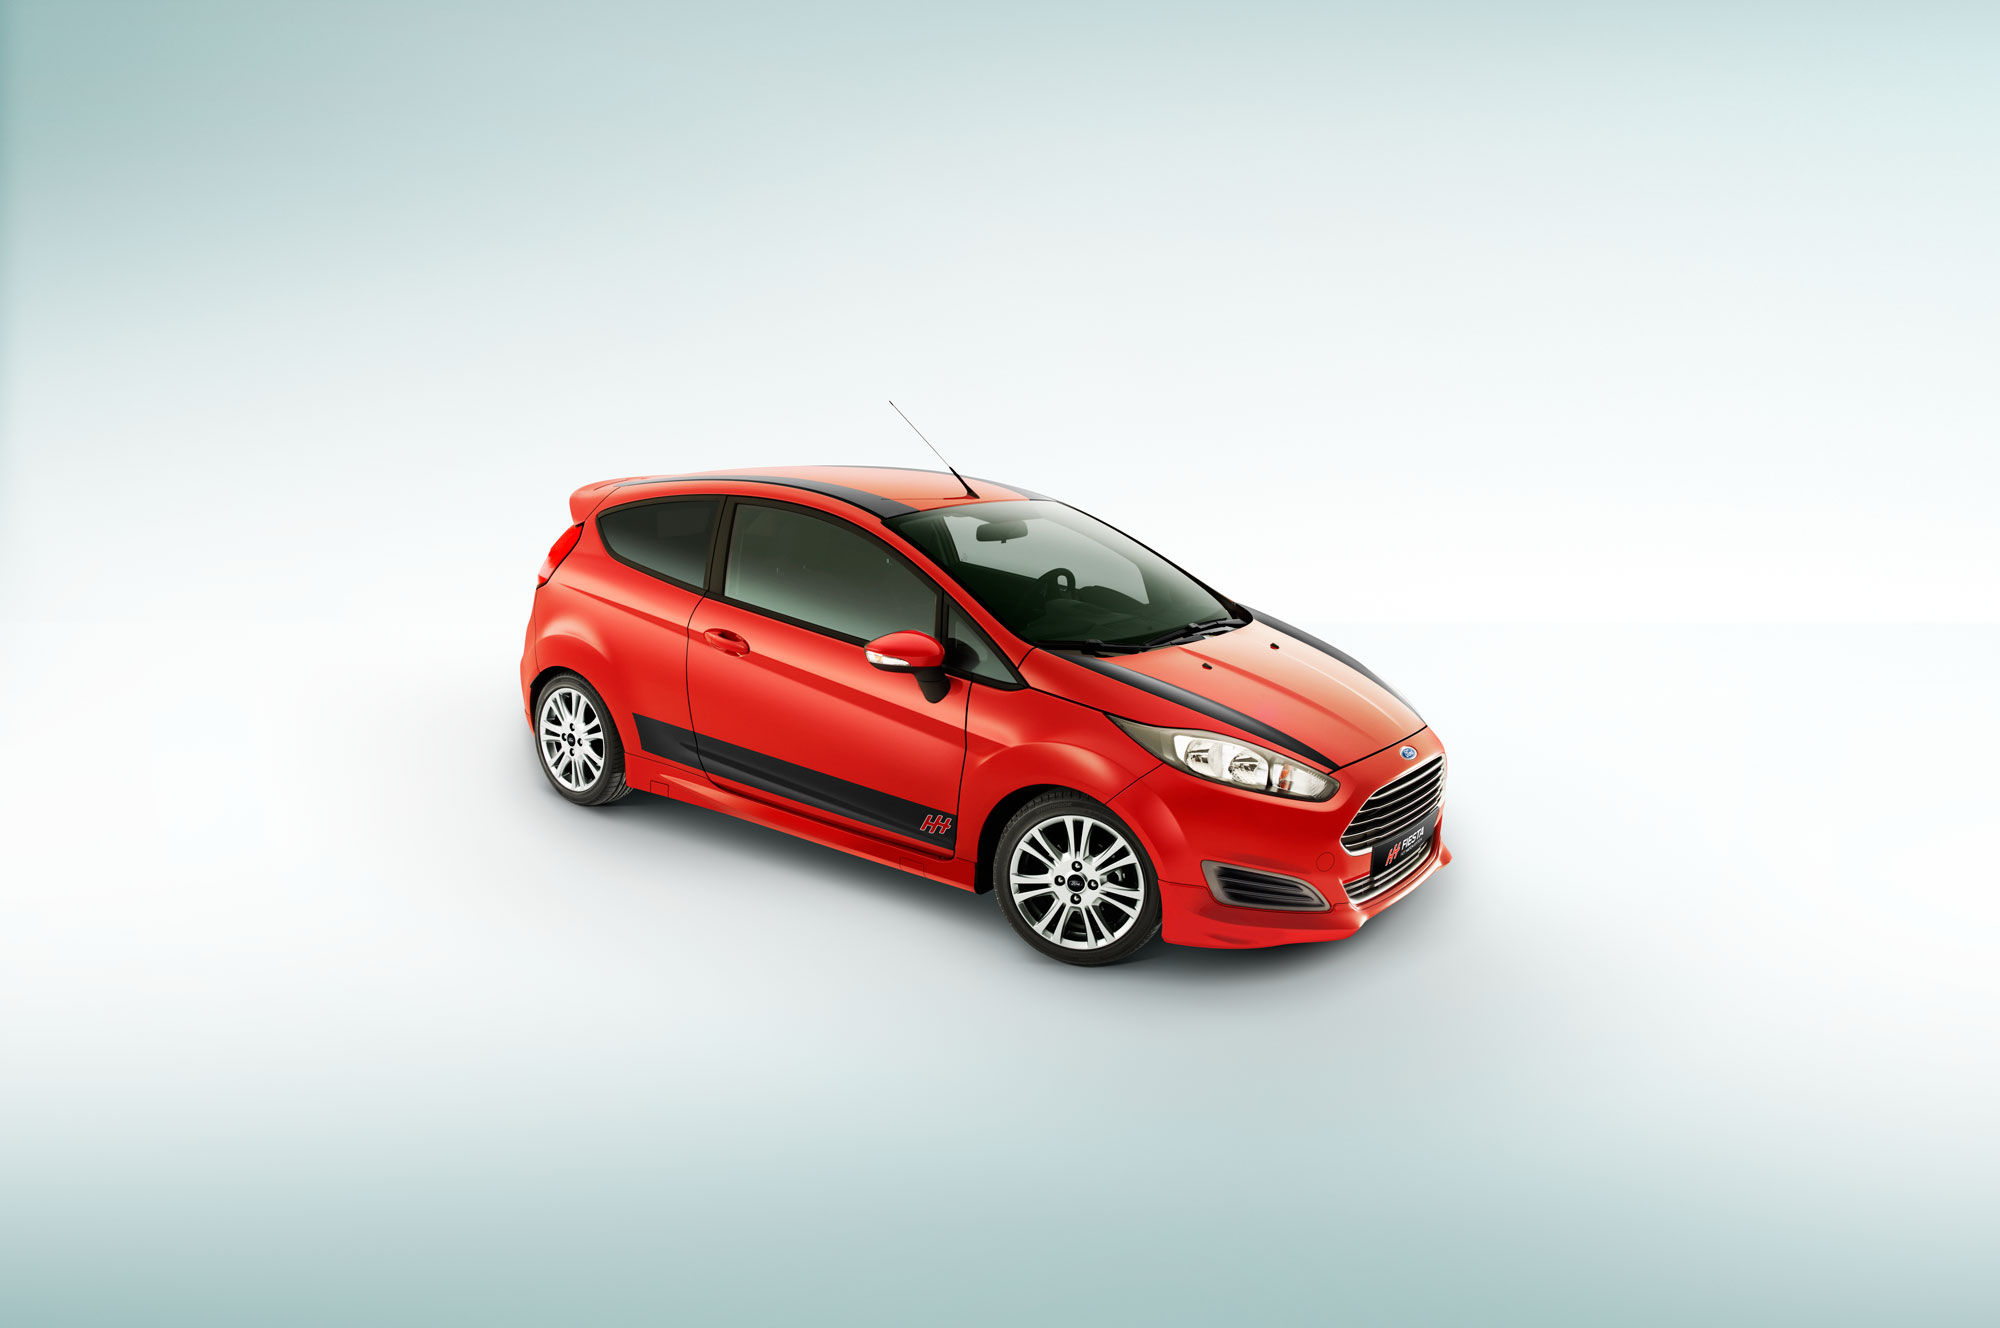 Ford; fiesta; hot hatch; red; car; striping; white background; studio; amsterdam; the netherlands; rood; auto; witte achtergrond